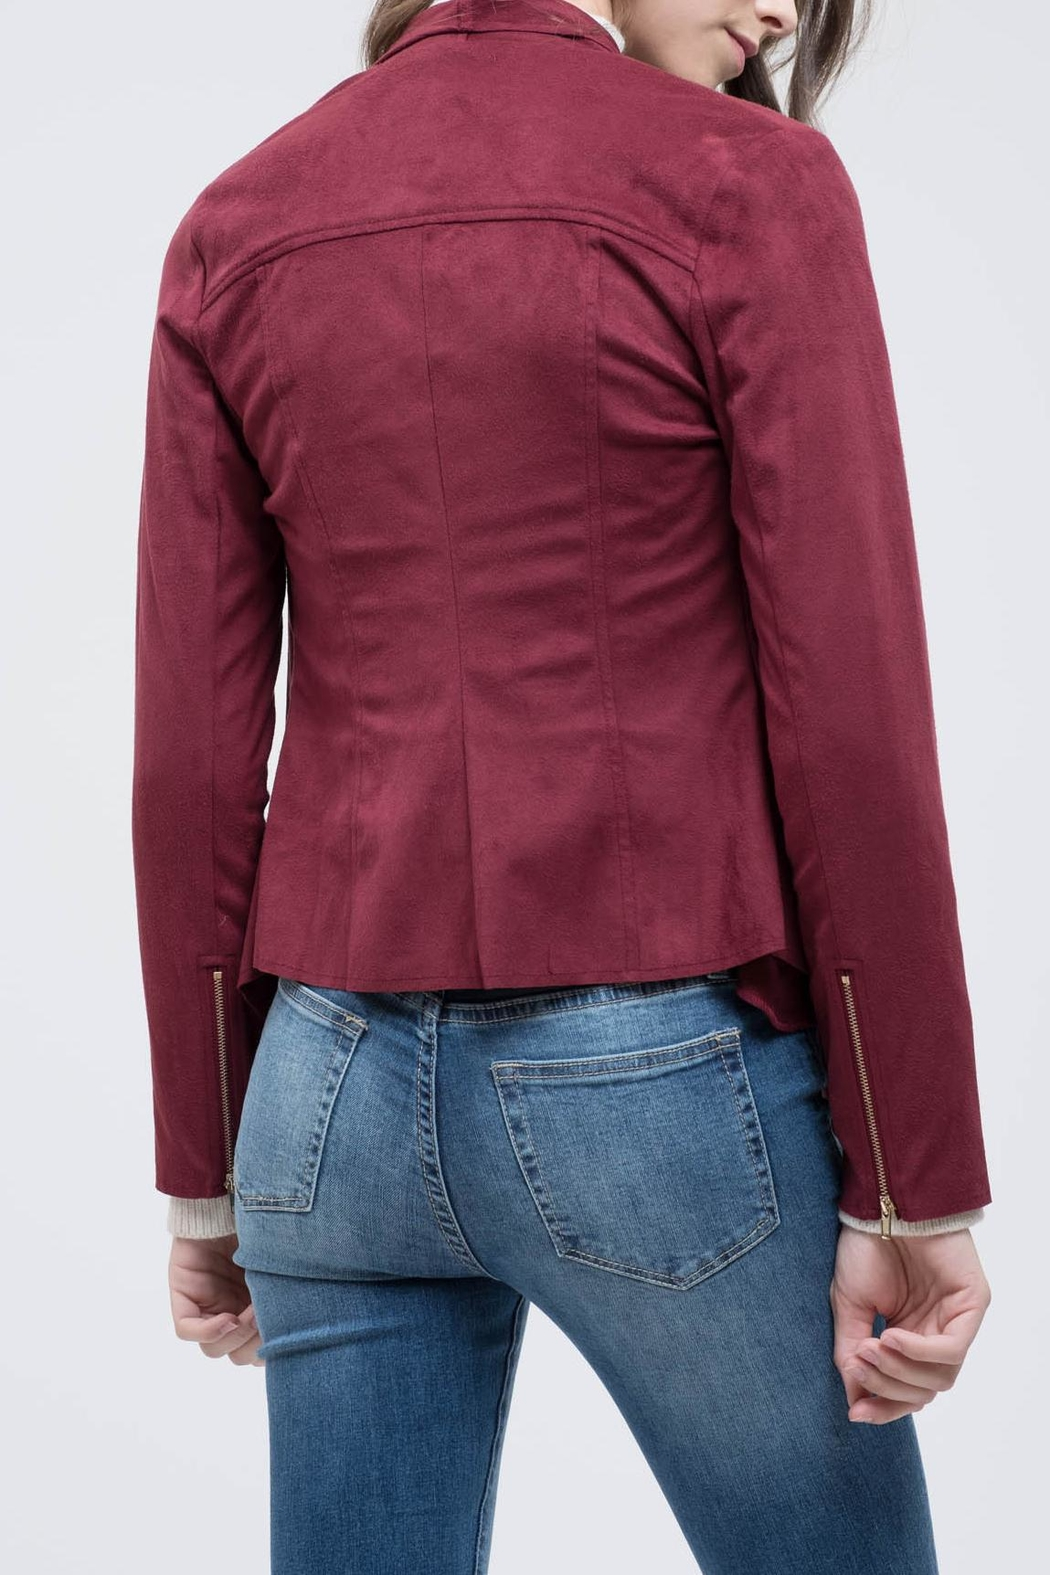 Blu Pepper Like Red-Wine Jacket - Front Full Image